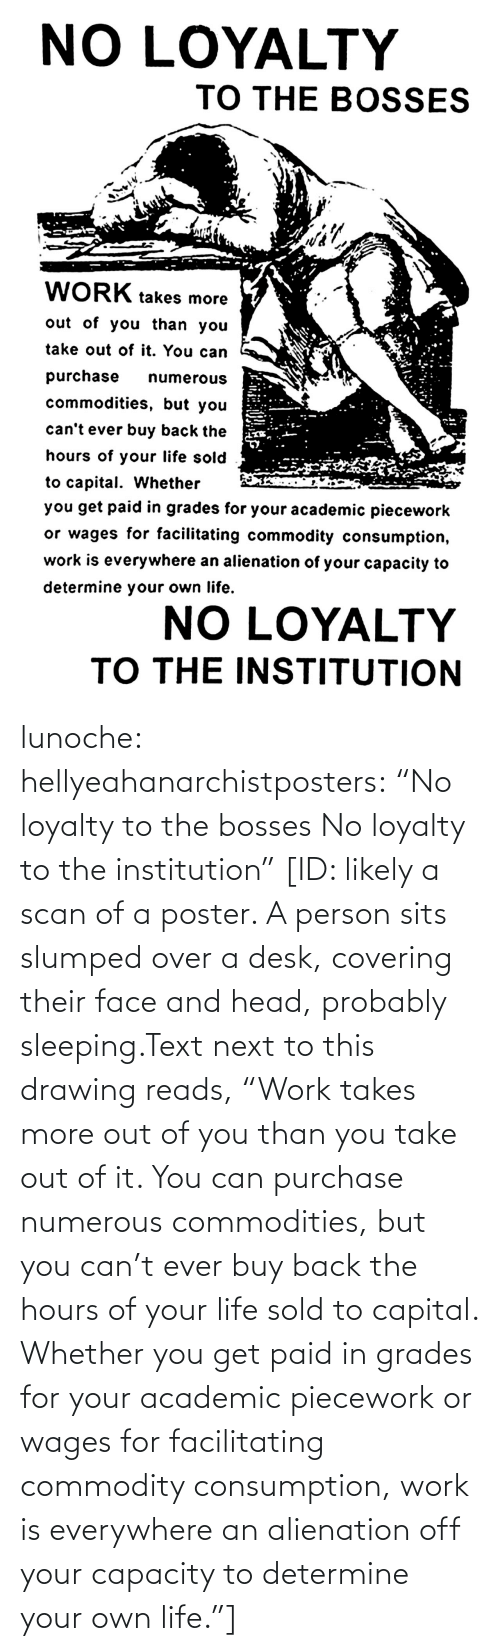 "Sits: lunoche:  hellyeahanarchistposters: ""No loyalty to the bosses No loyalty to the institution""   [ID: likely a scan of a poster. A person sits slumped over a desk, covering their face and head, probably sleeping.Text next to this drawing reads, ""Work takes more out of you than you take out of it. You can purchase numerous commodities, but you can't ever buy back the hours of your life sold to capital. Whether you get paid in grades for your academic piecework or wages for facilitating commodity consumption, work is everywhere an alienation off your capacity to determine your own life.""]"